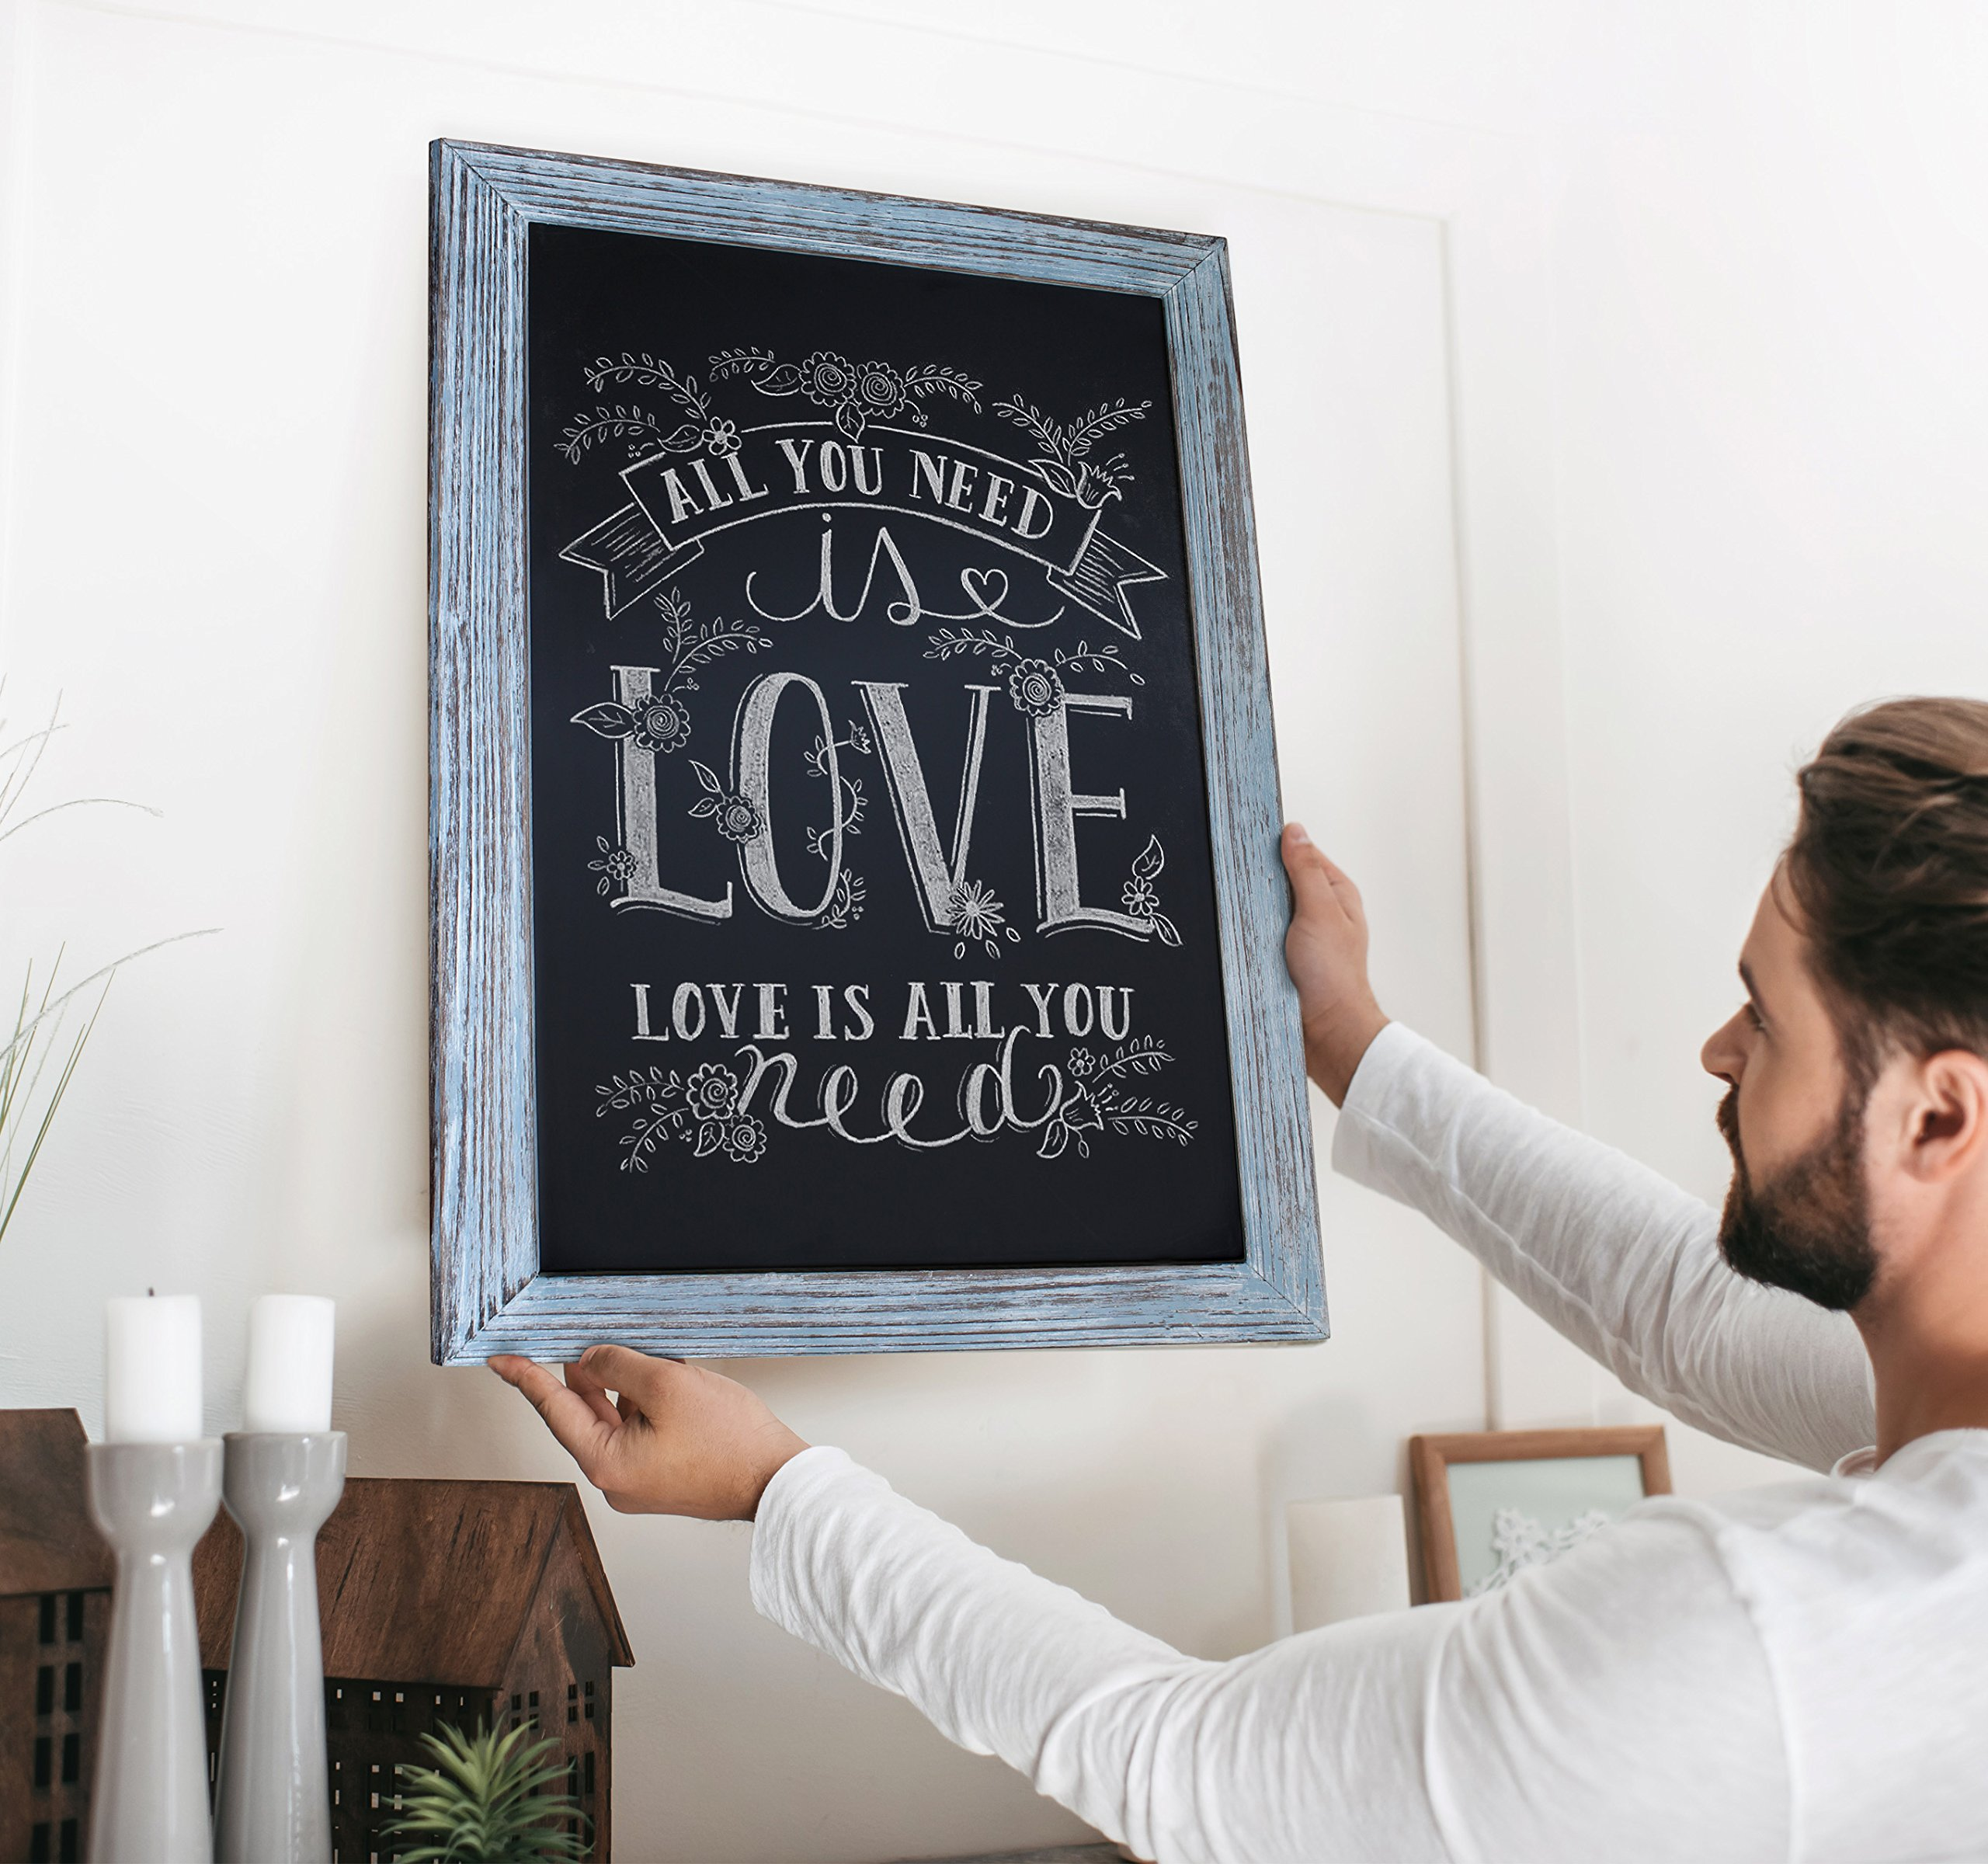 Rustic Blue Magnetic Wall Chalkboard, Extra Large Size 20'' x 30'', Framed Decorative Chalkboard - Great for Kitchen Decor, Weddings, Restaurant Menus and More! … (20''x30'') by HBCY Creations (Image #6)